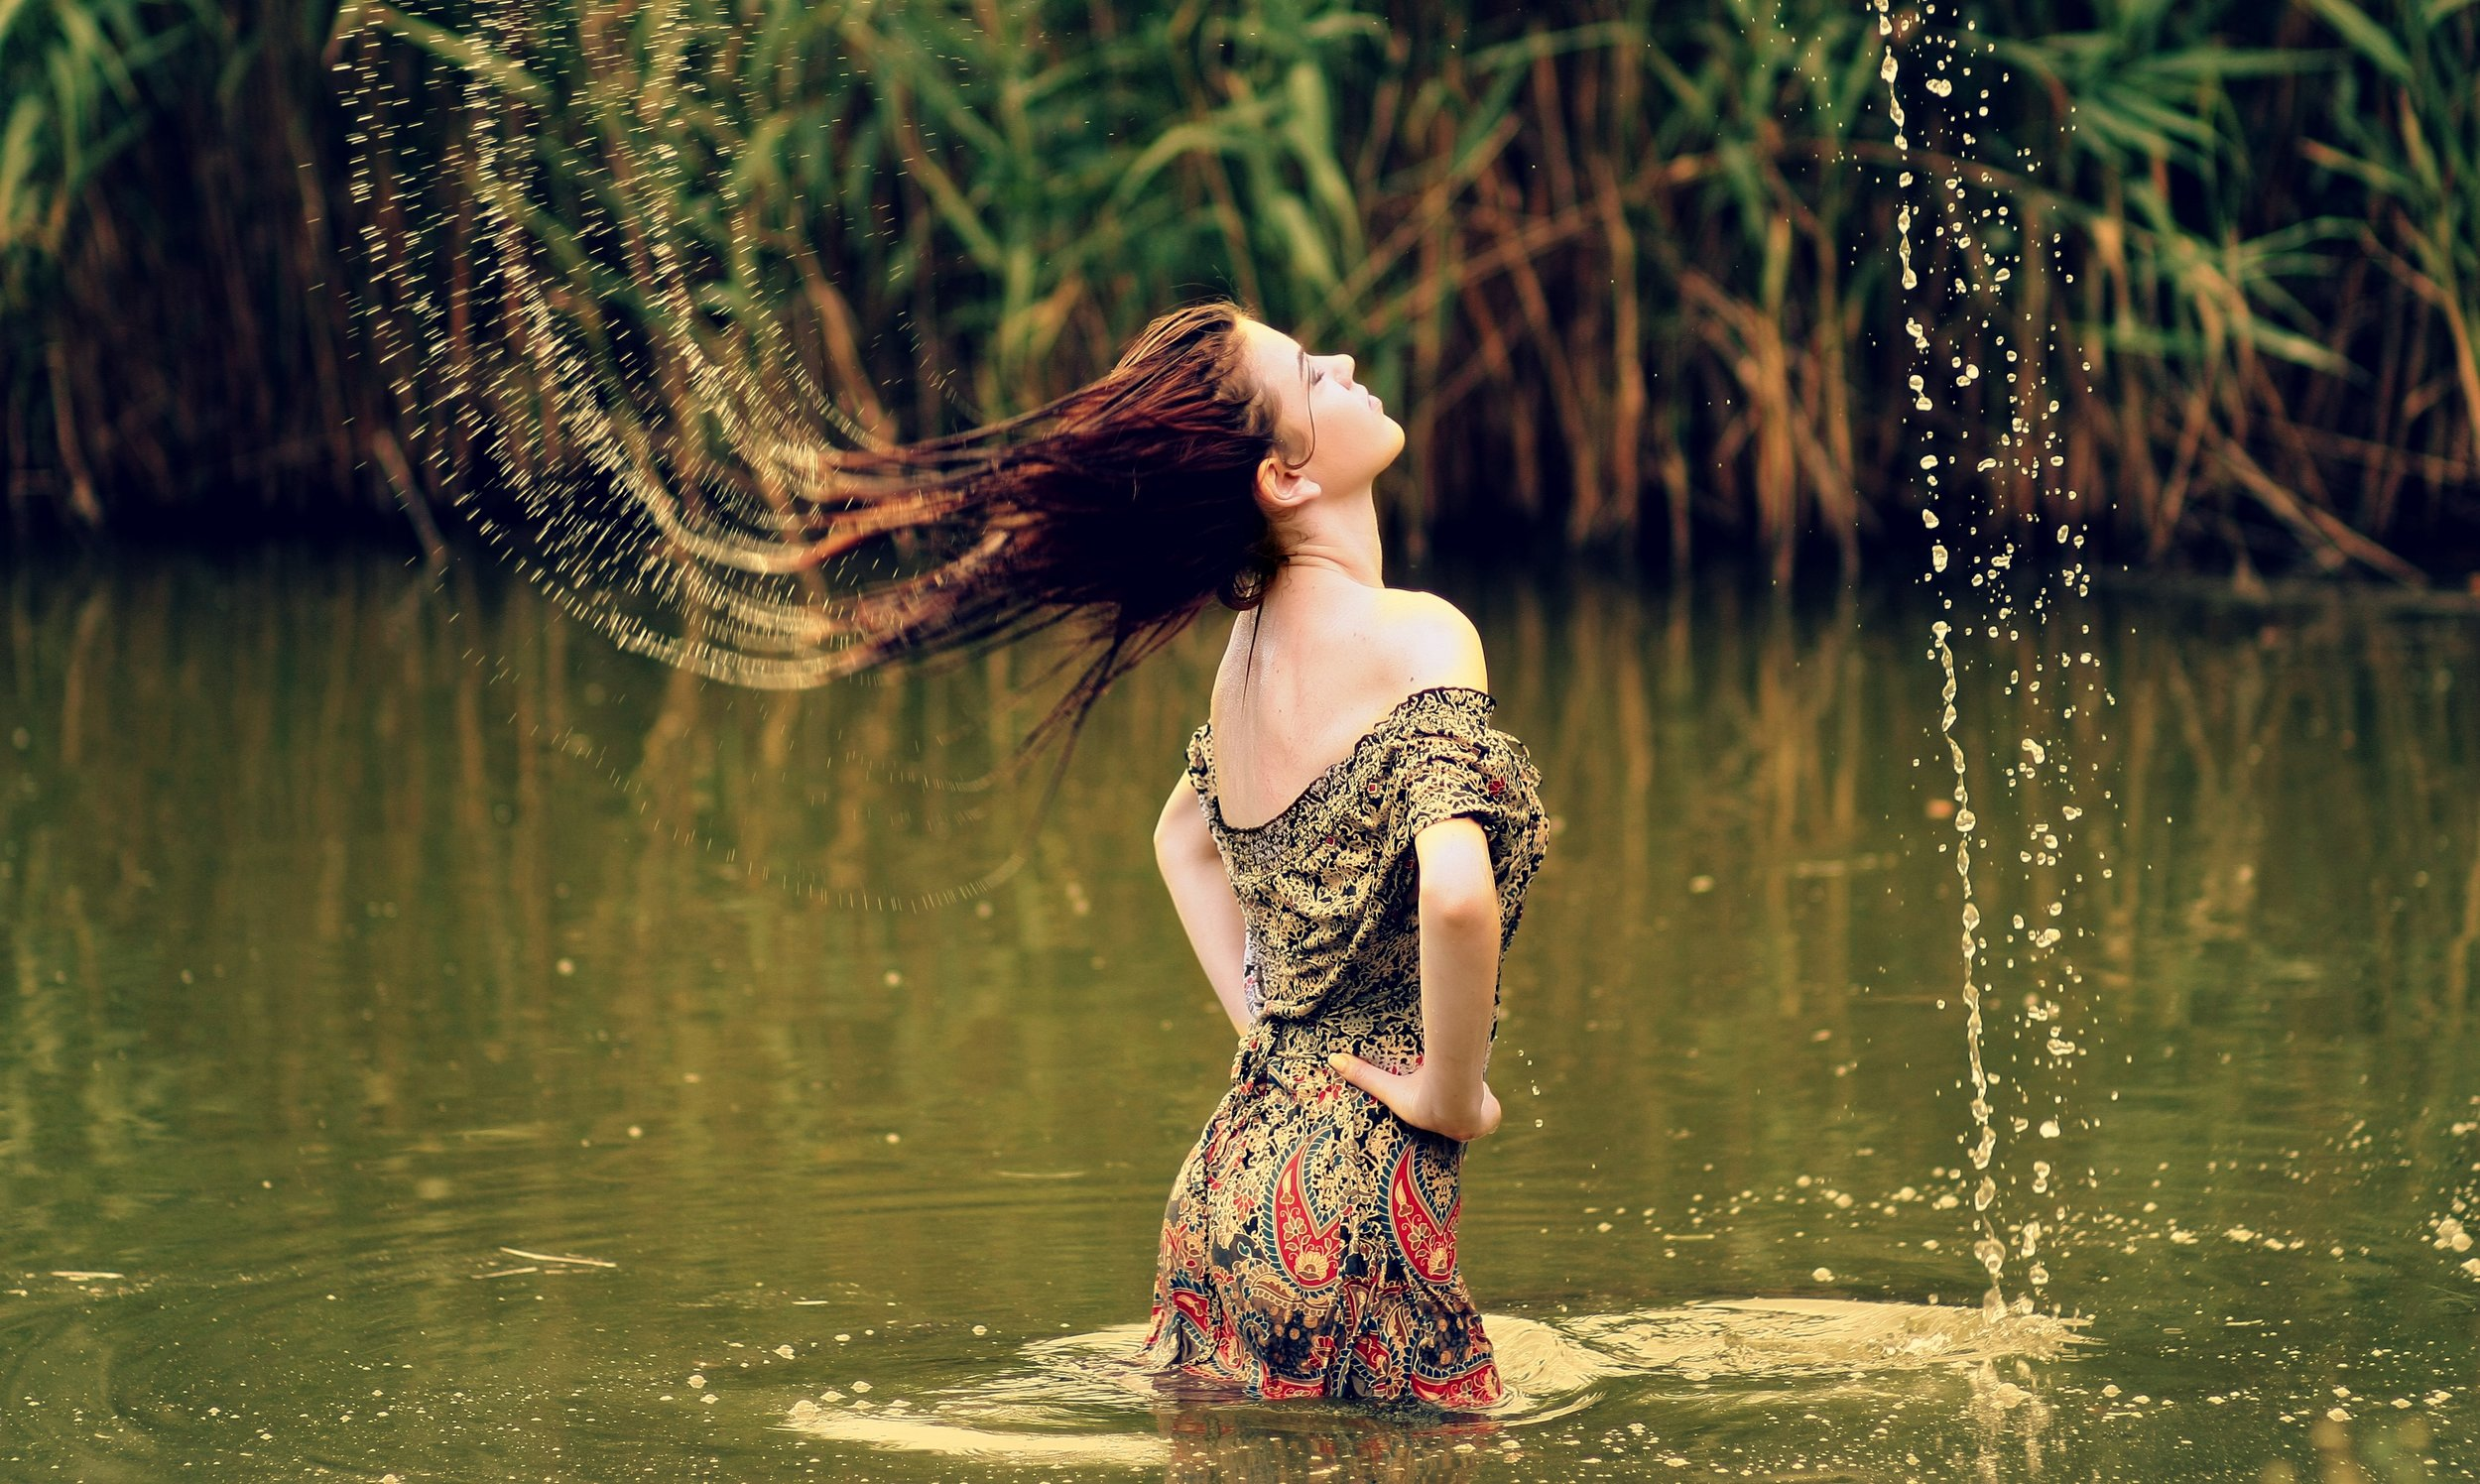 girl-with-slinging-water-from-her-hair.jpg